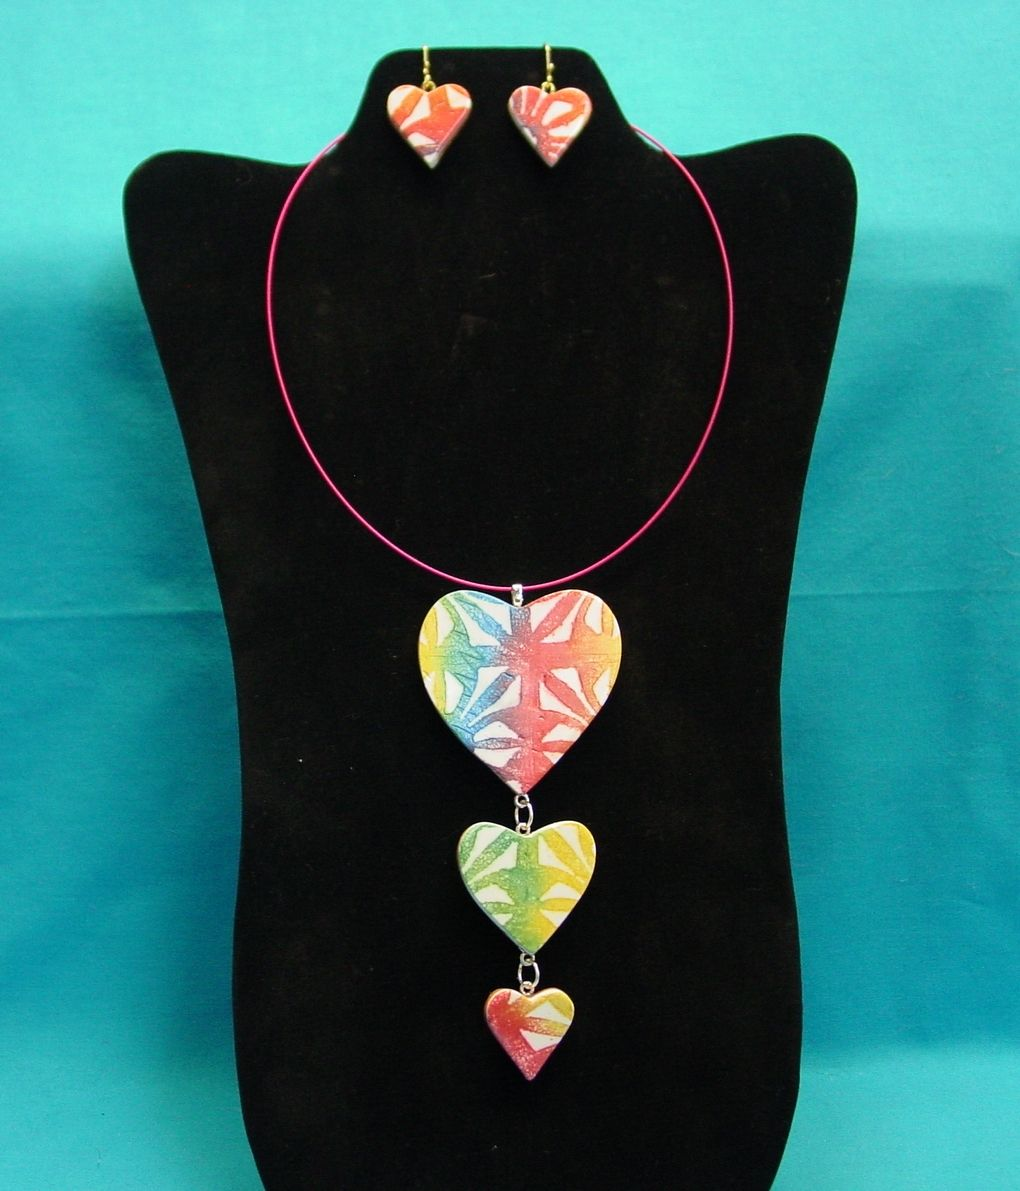 """Hearts in a Row"" made by moi using the Cindy Leitz's tutorial on her Batik technique. Hearts are hung on a red wire necklace with earrings to match."